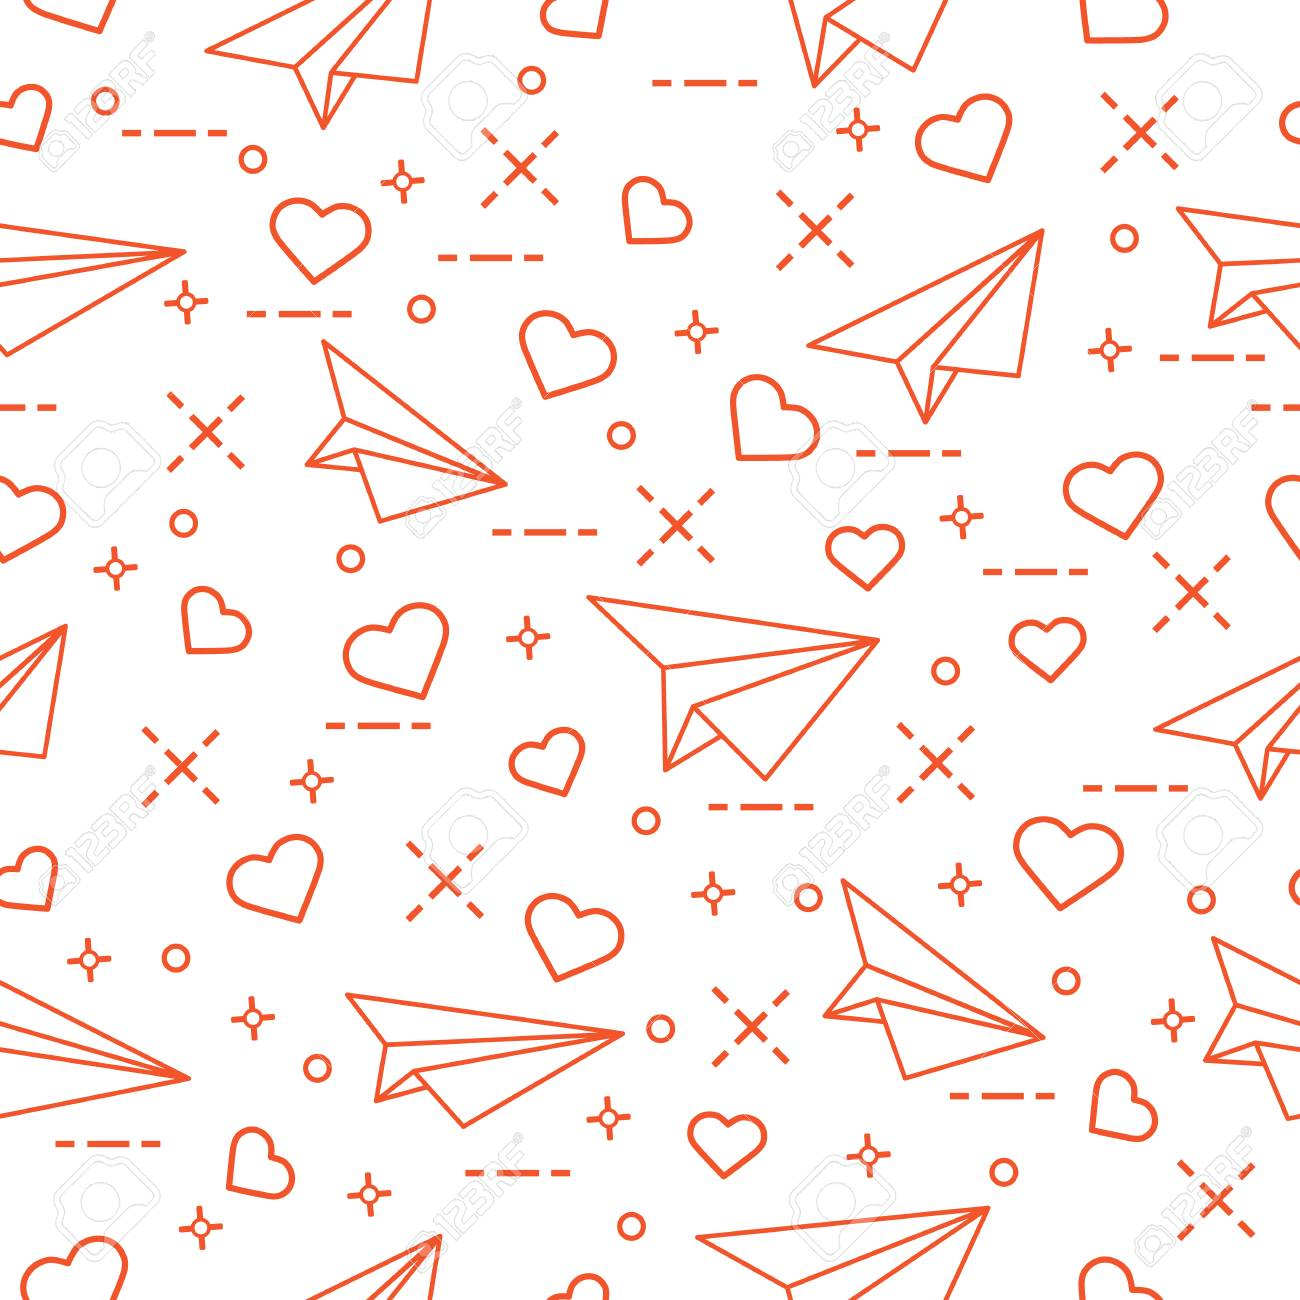 Cute Pattern With Paper Airplane And Hearts Royalty Free Cliparts